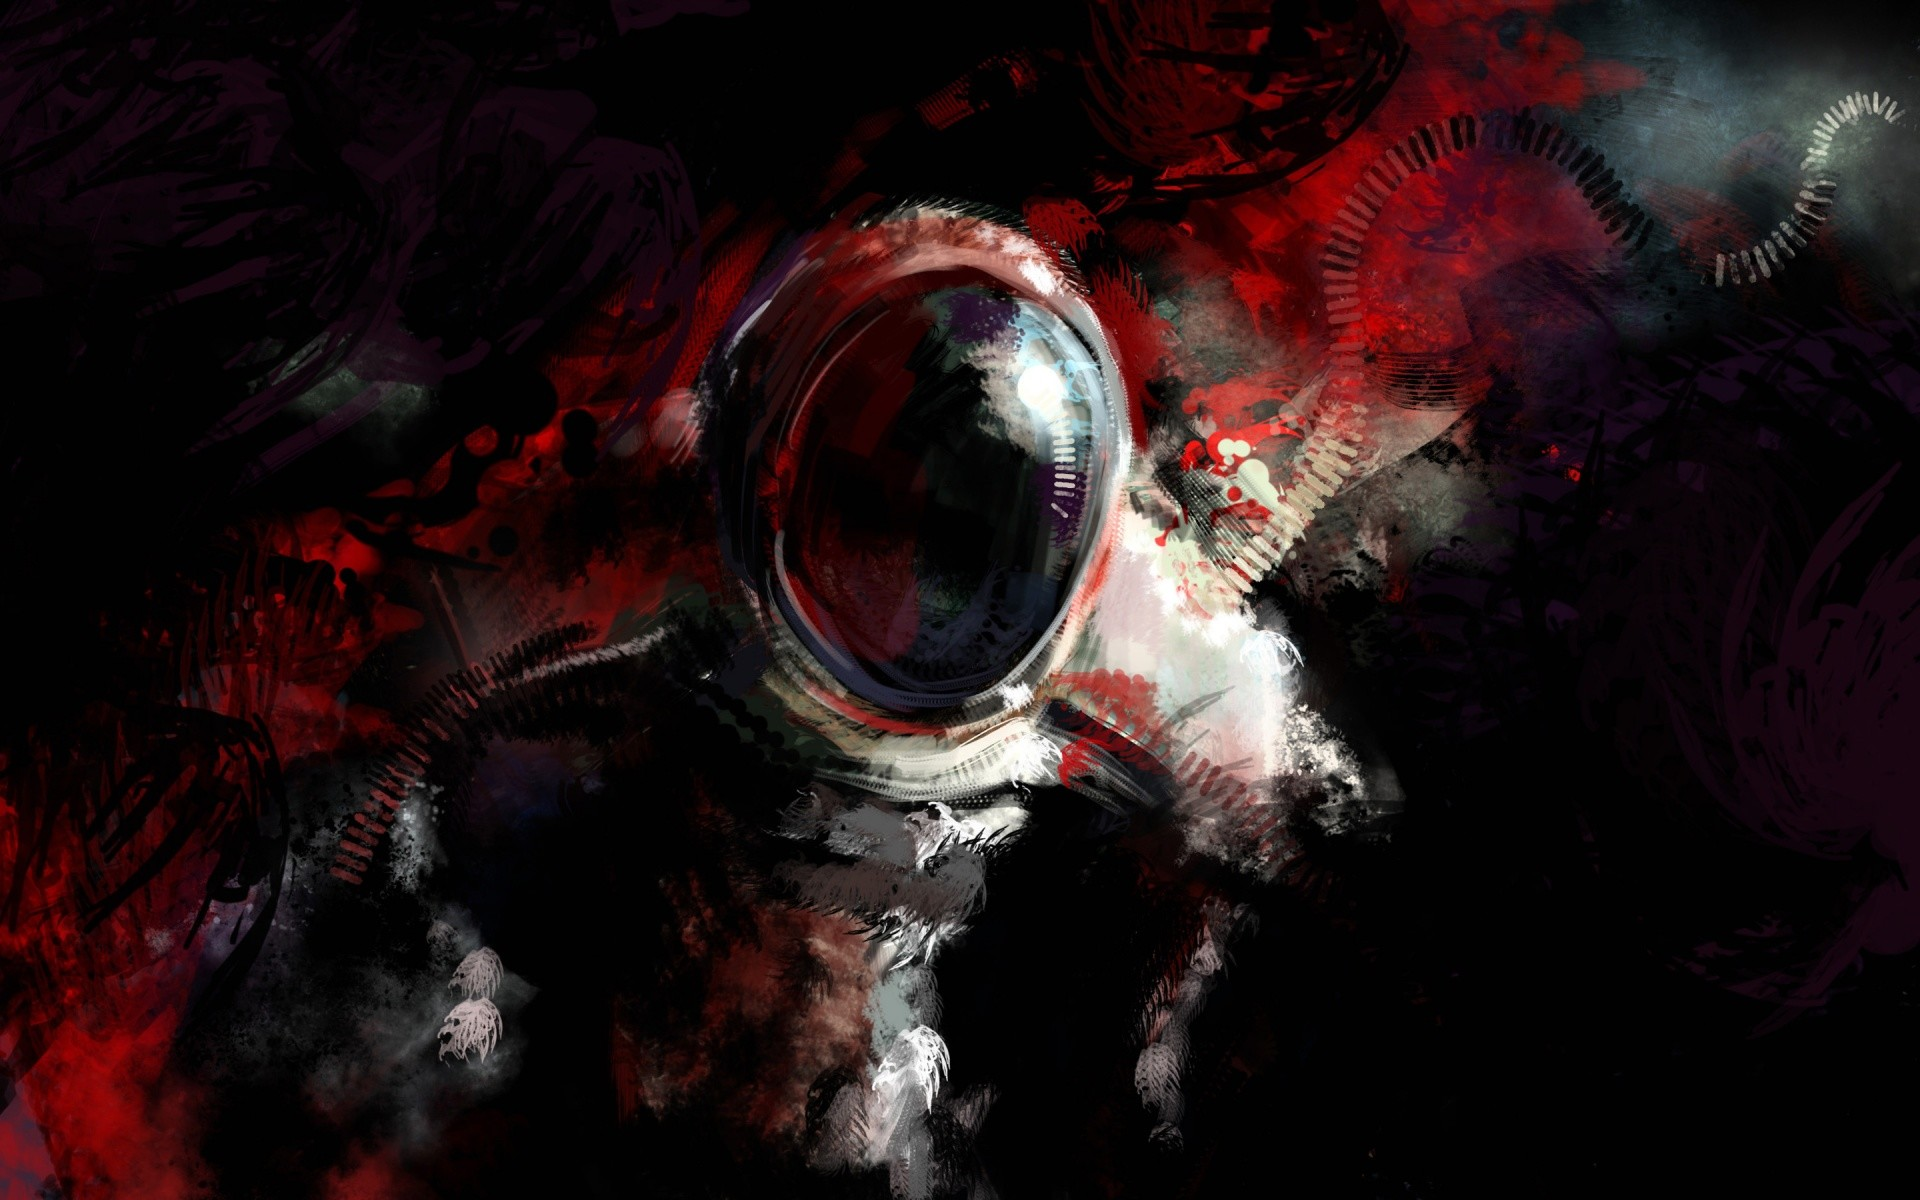 Astronaut in Space Abstract wallpaper | Best HD Wallpapers